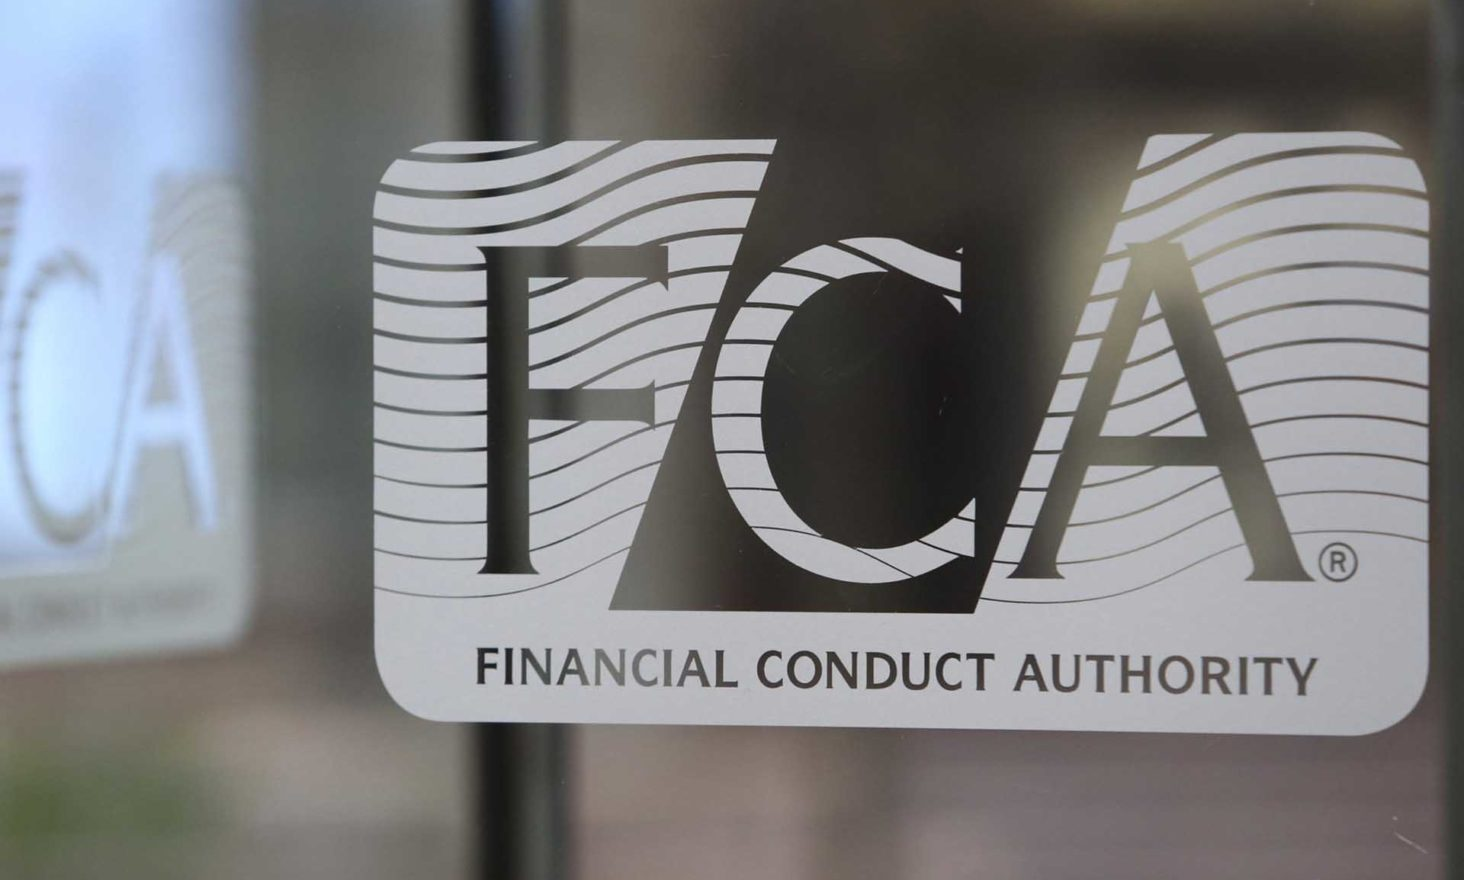 FCA Clarifies Stance on Cryptocurrency Offerings - Derivatives 'Likely' Require Authorization